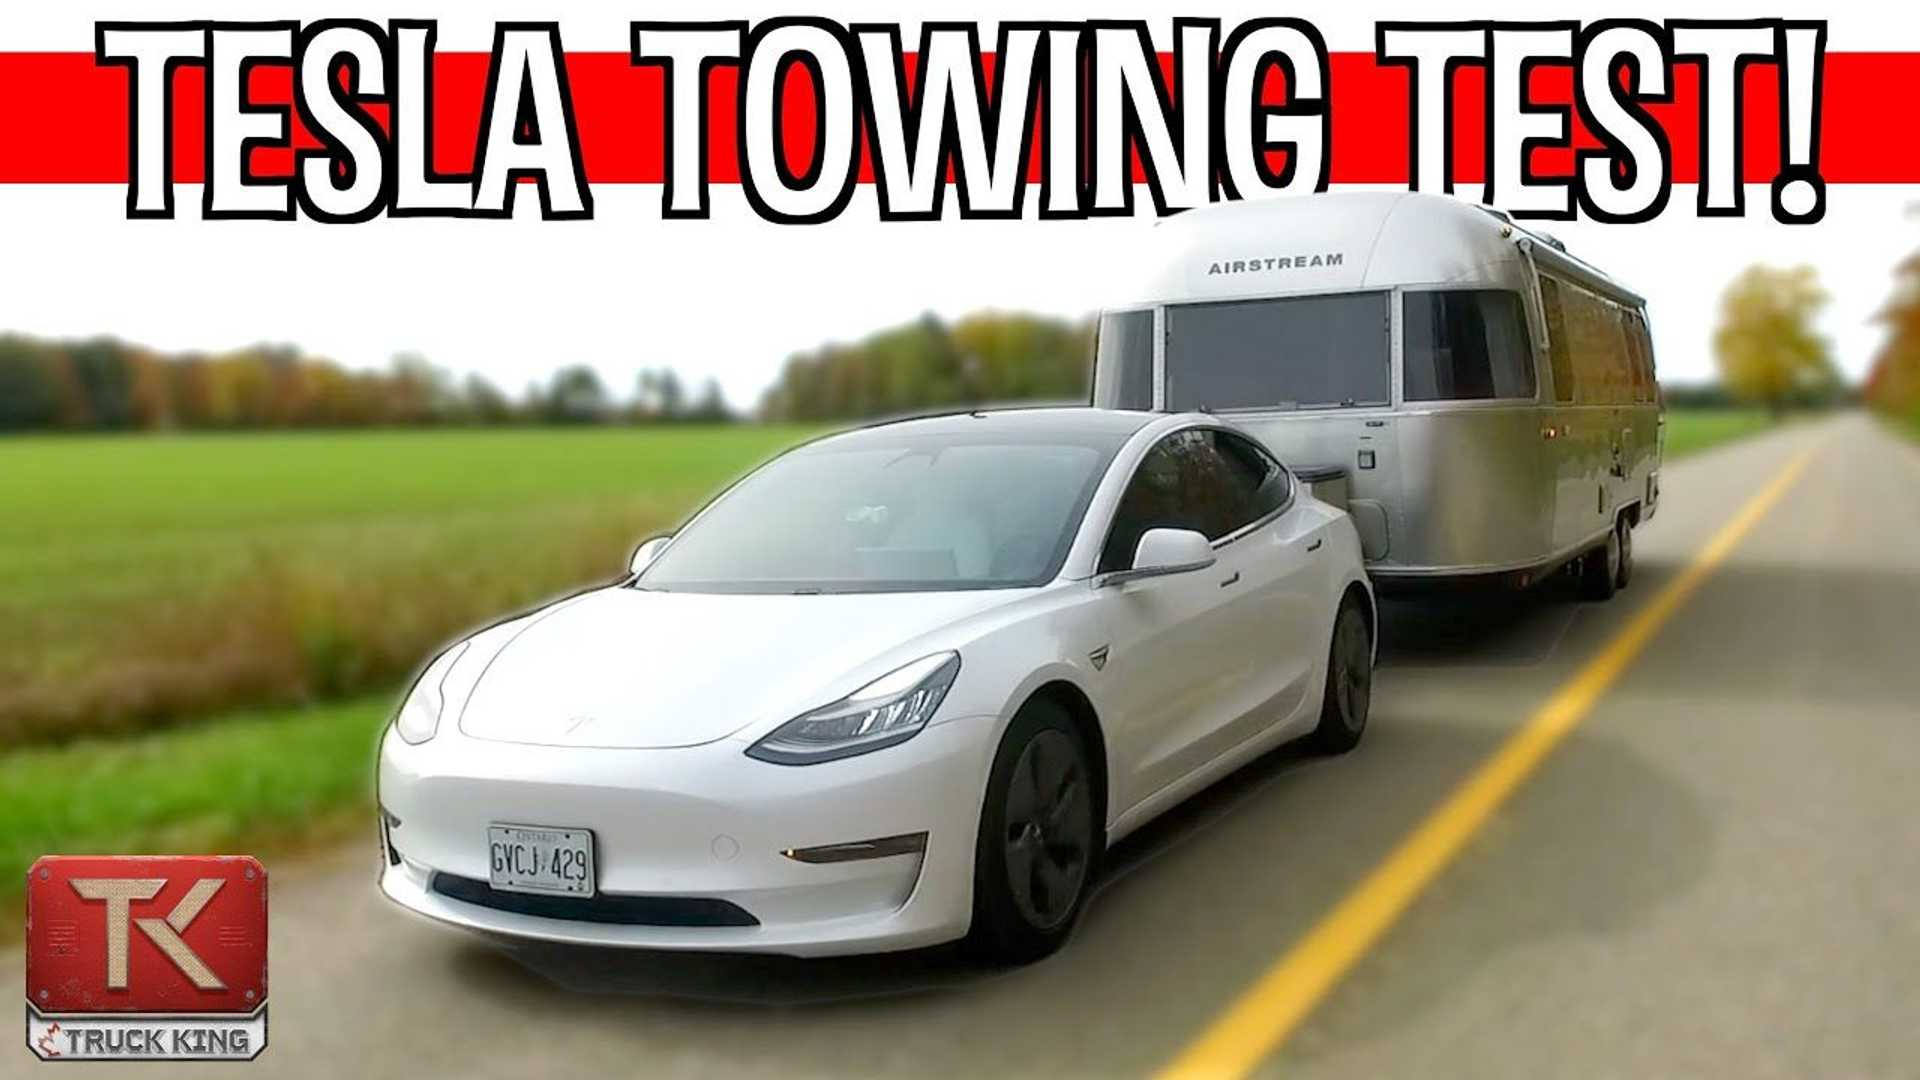 Tesla Model 3 Towing Huge 26-Foot Airstream: Range & Power Test